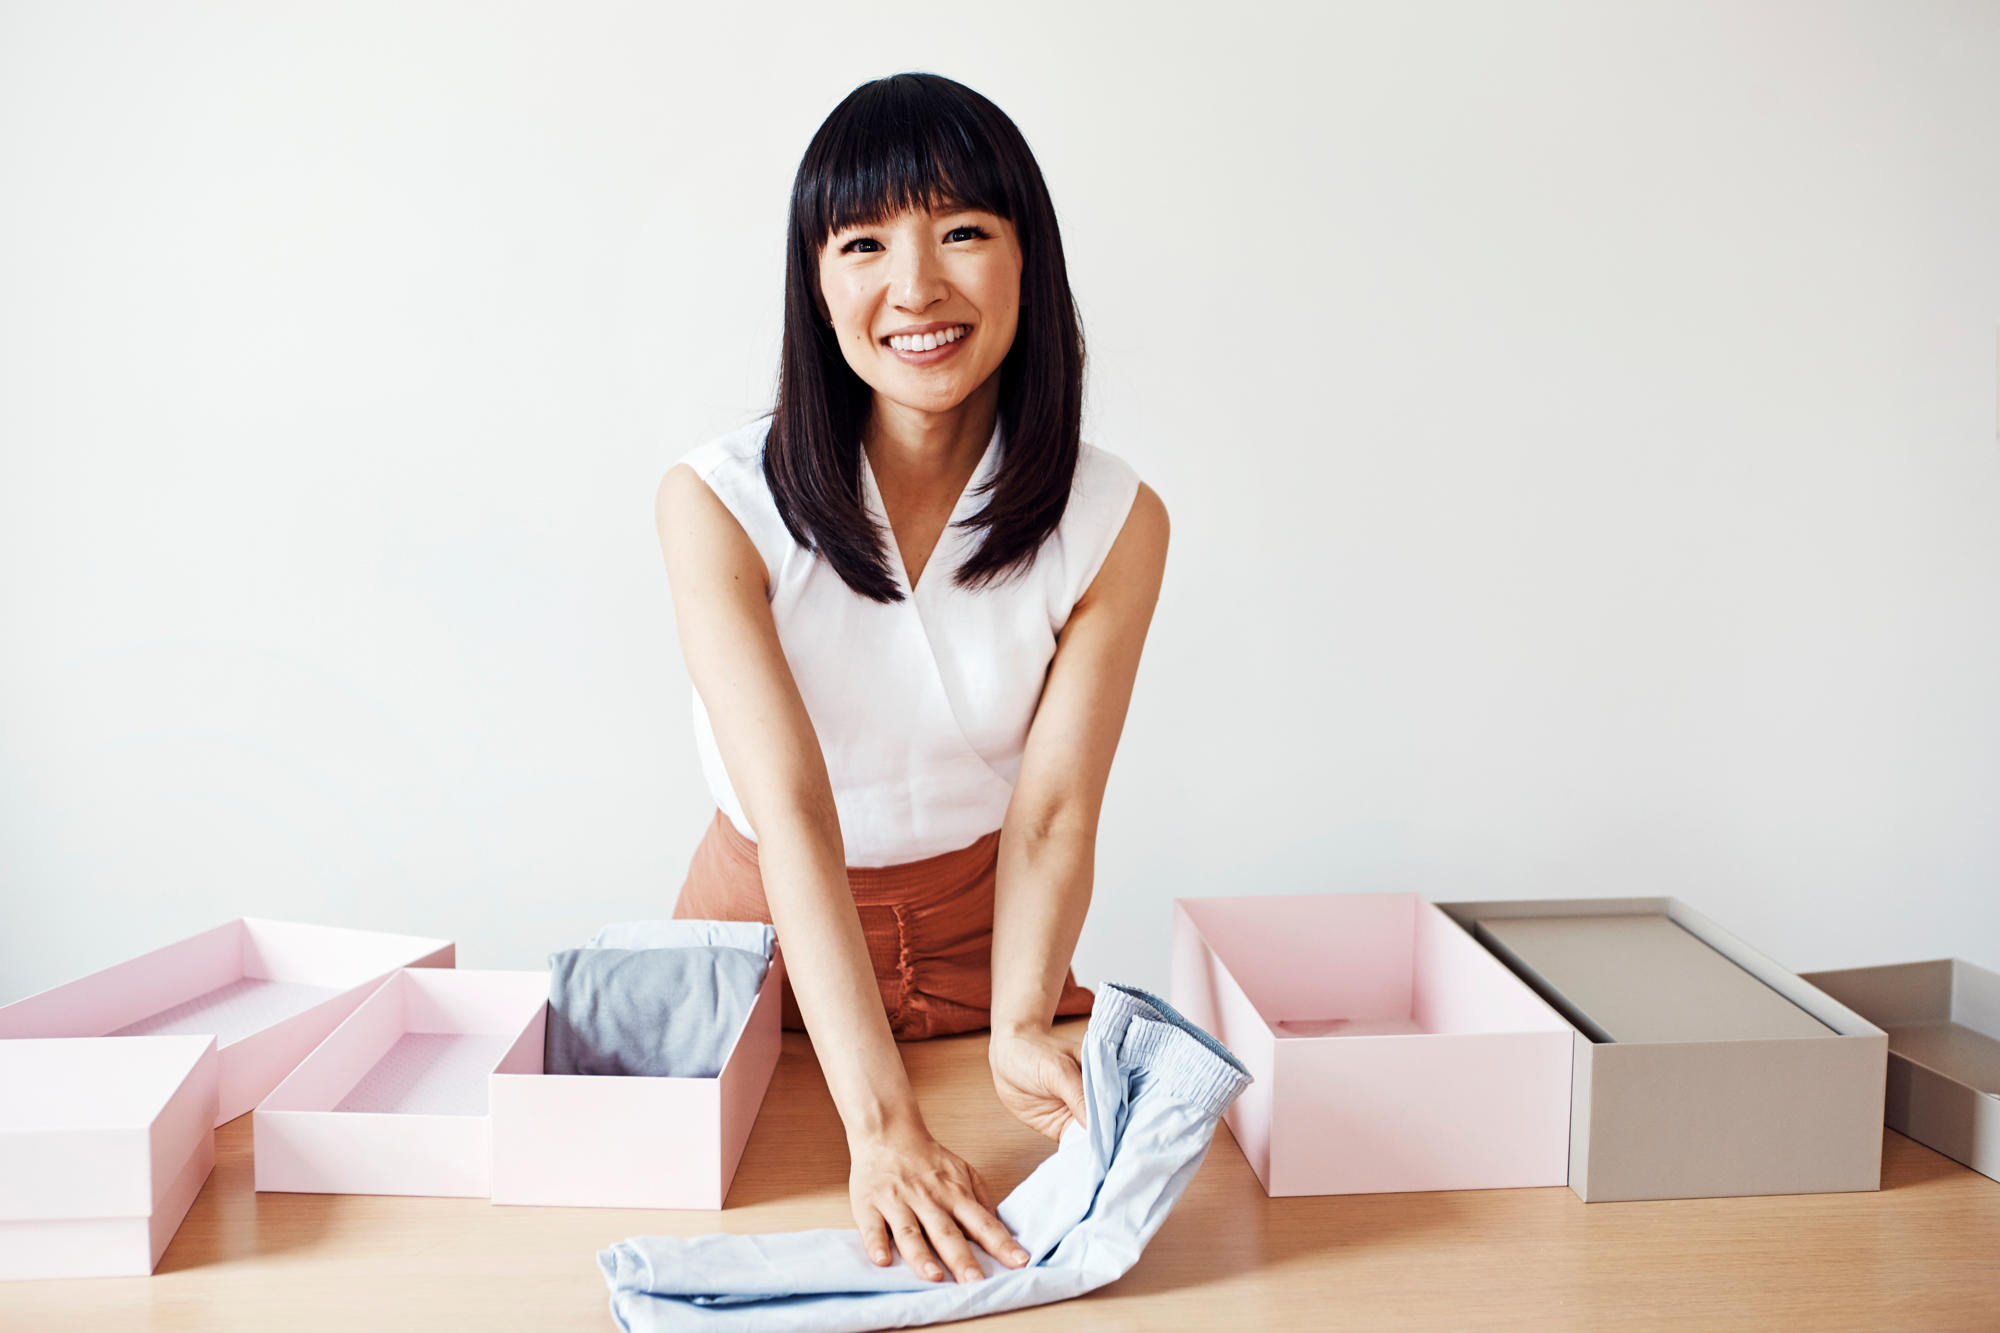 Cleaning Up, Featured, Konmari, Life Lessons, Marie Kondo, Online Exclusive, Organising, Spark Joy, The Life-Changing Magic of Tidying Up: The Japanese Art of Decluttering and Organizing, Tidying Up, Tidying Up With Marie Kondo